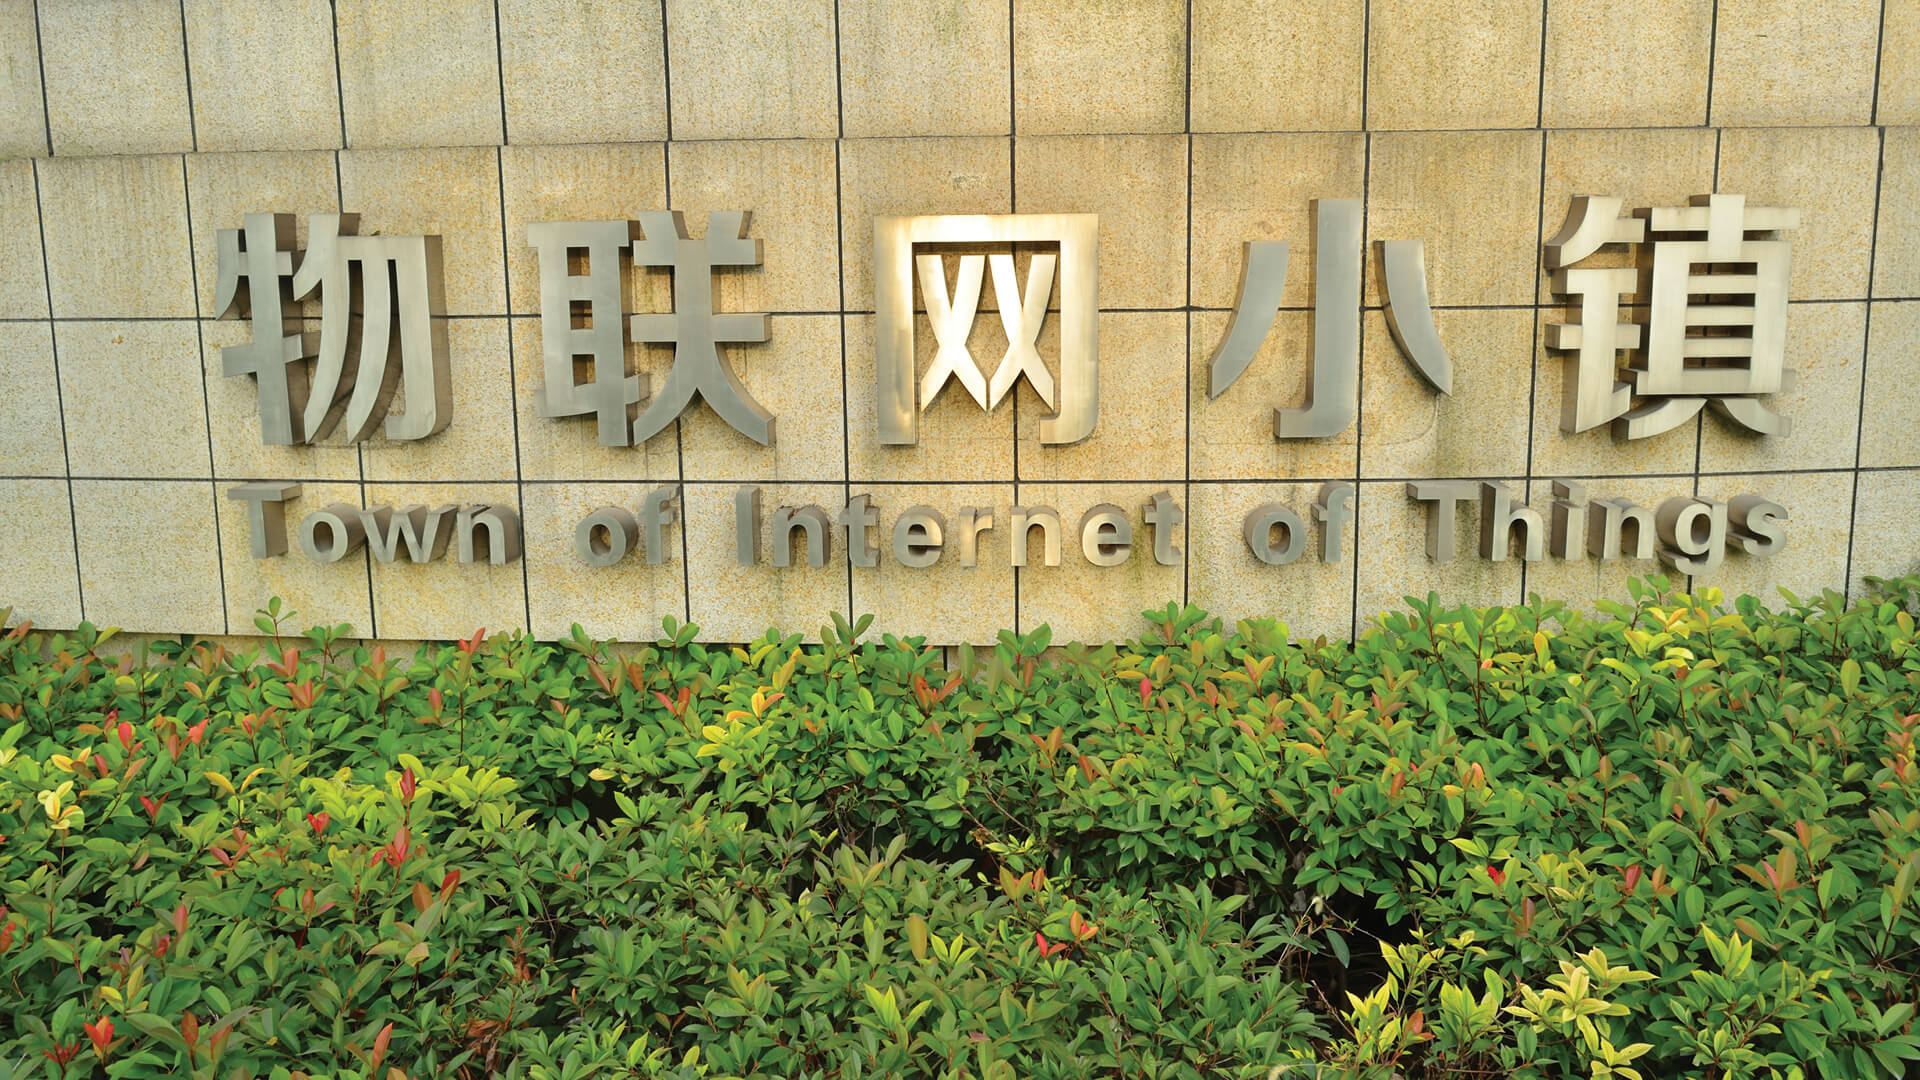 The Town of Internet of Things in Hangzhou | Digital Legacies | Julius Wiedemann | STIRworld